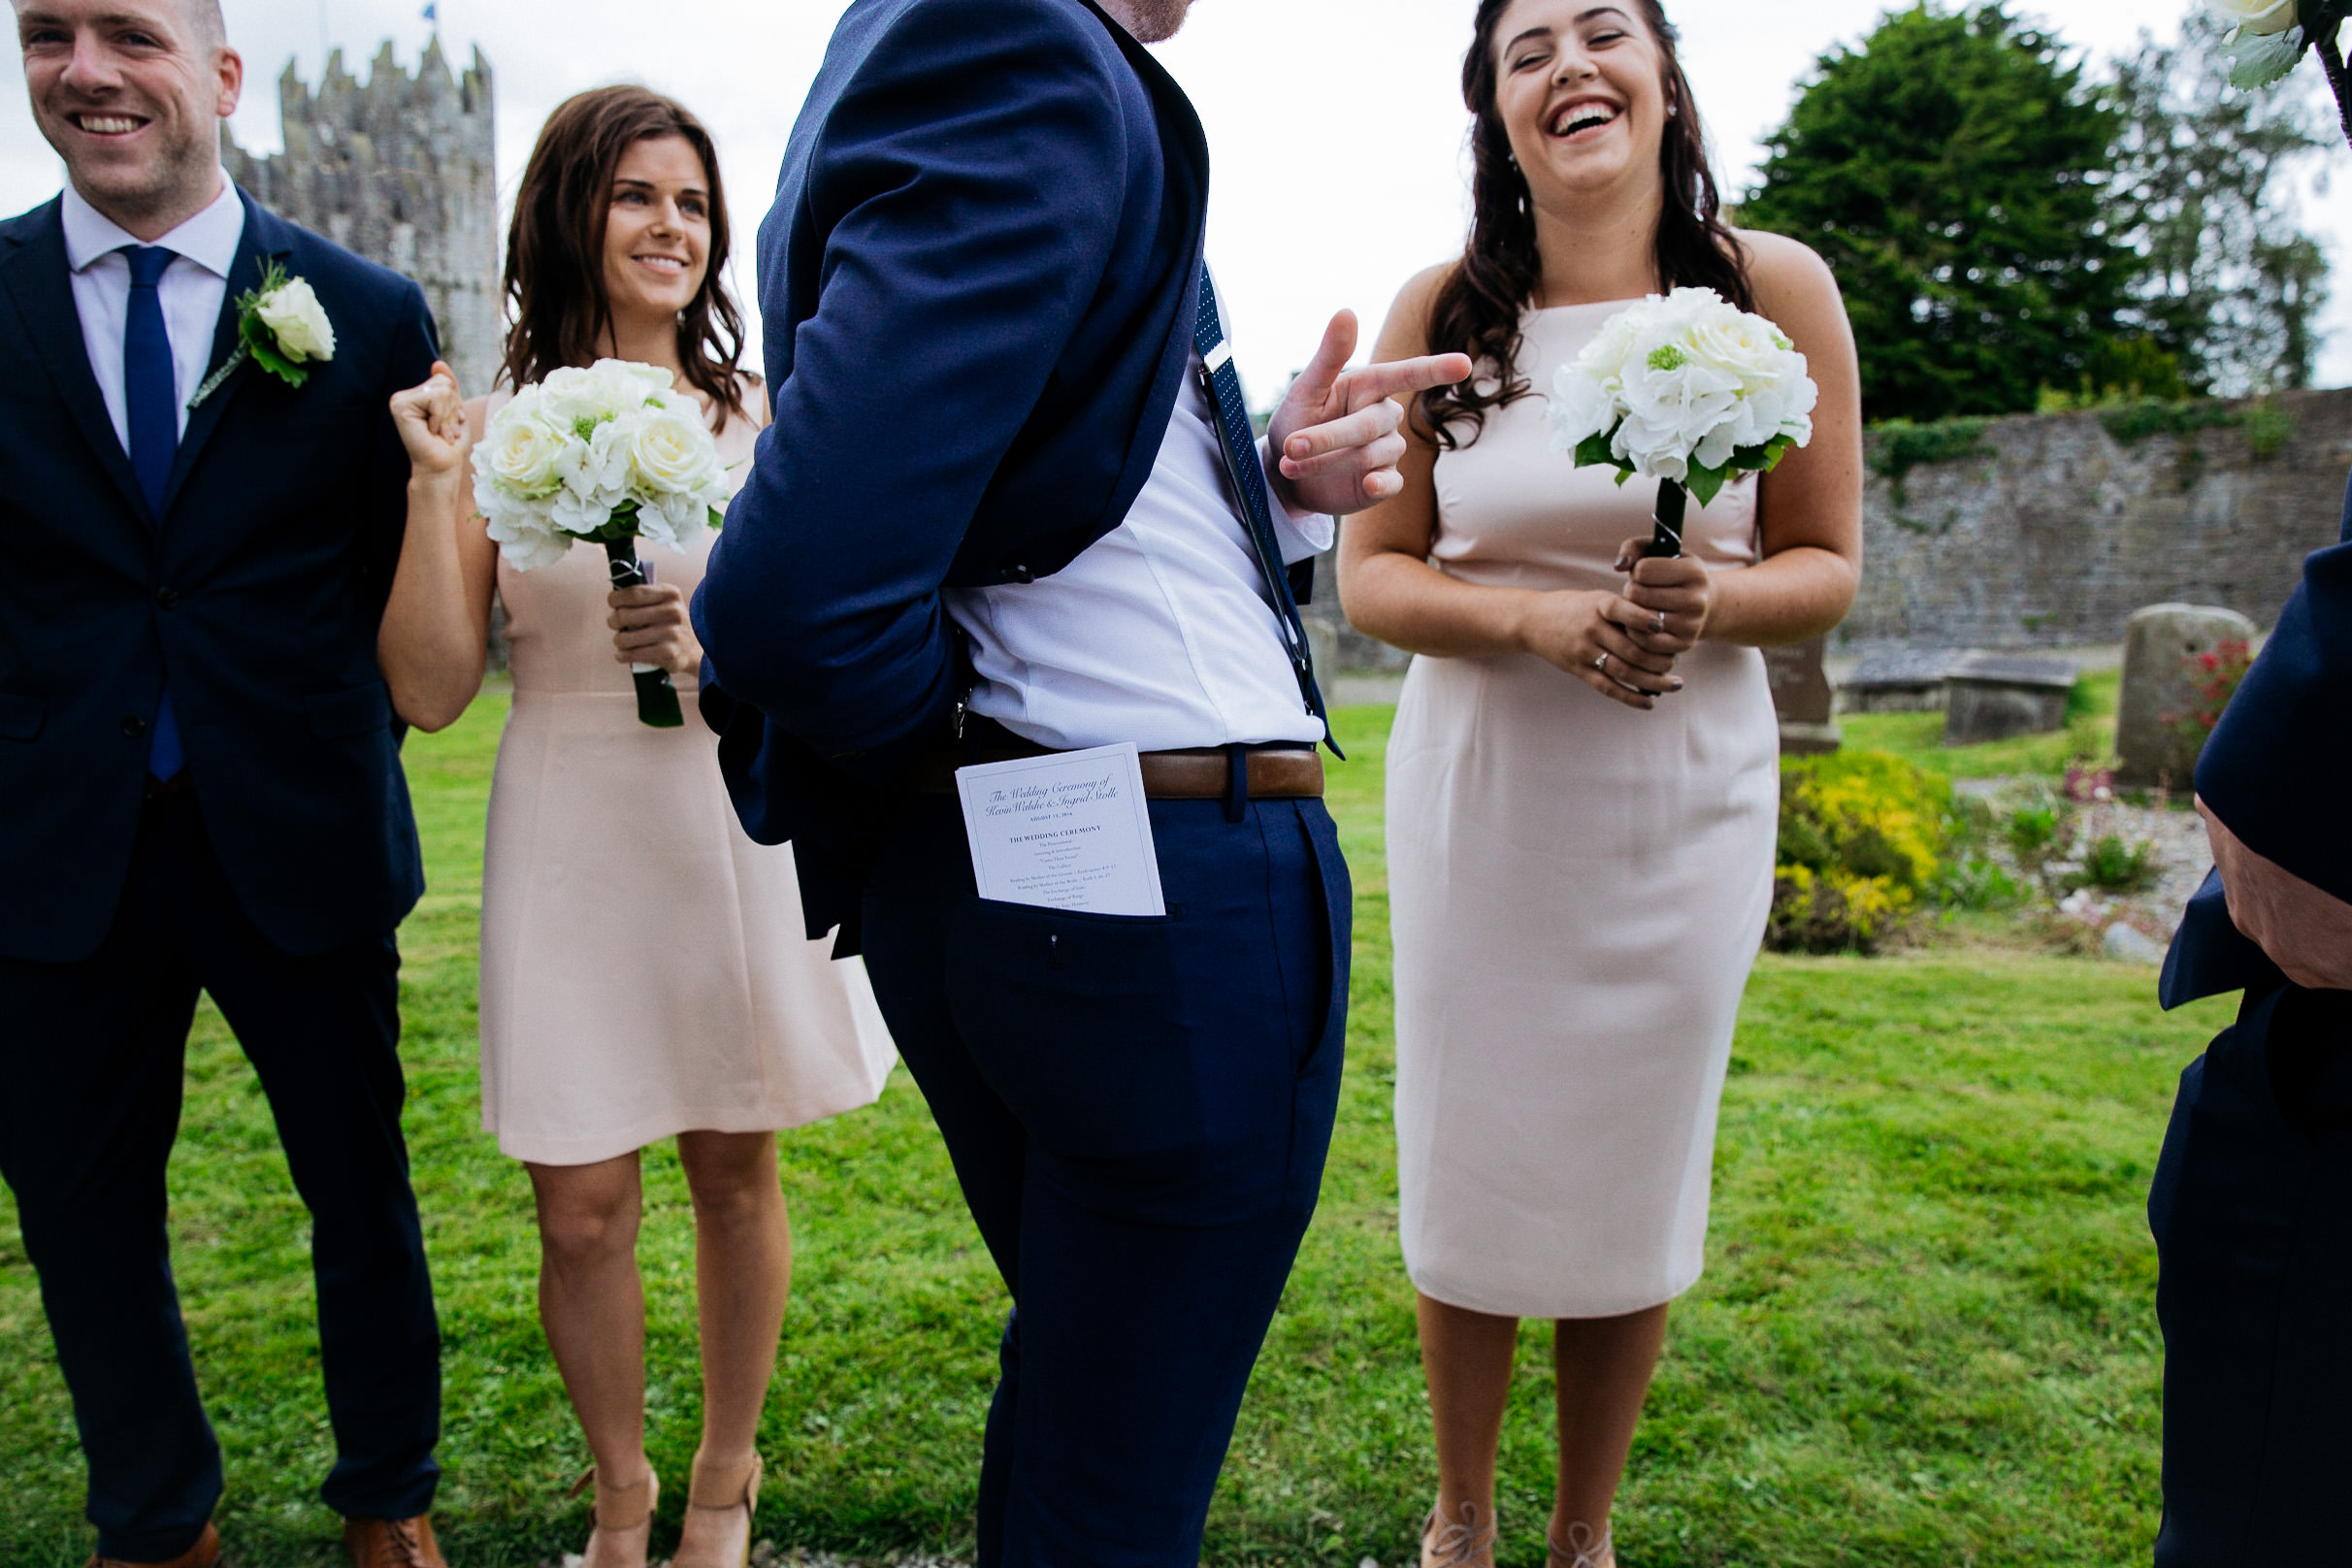 clairebyrnephotography-fun-wedding-photographer-ireland-creative-290.jpg